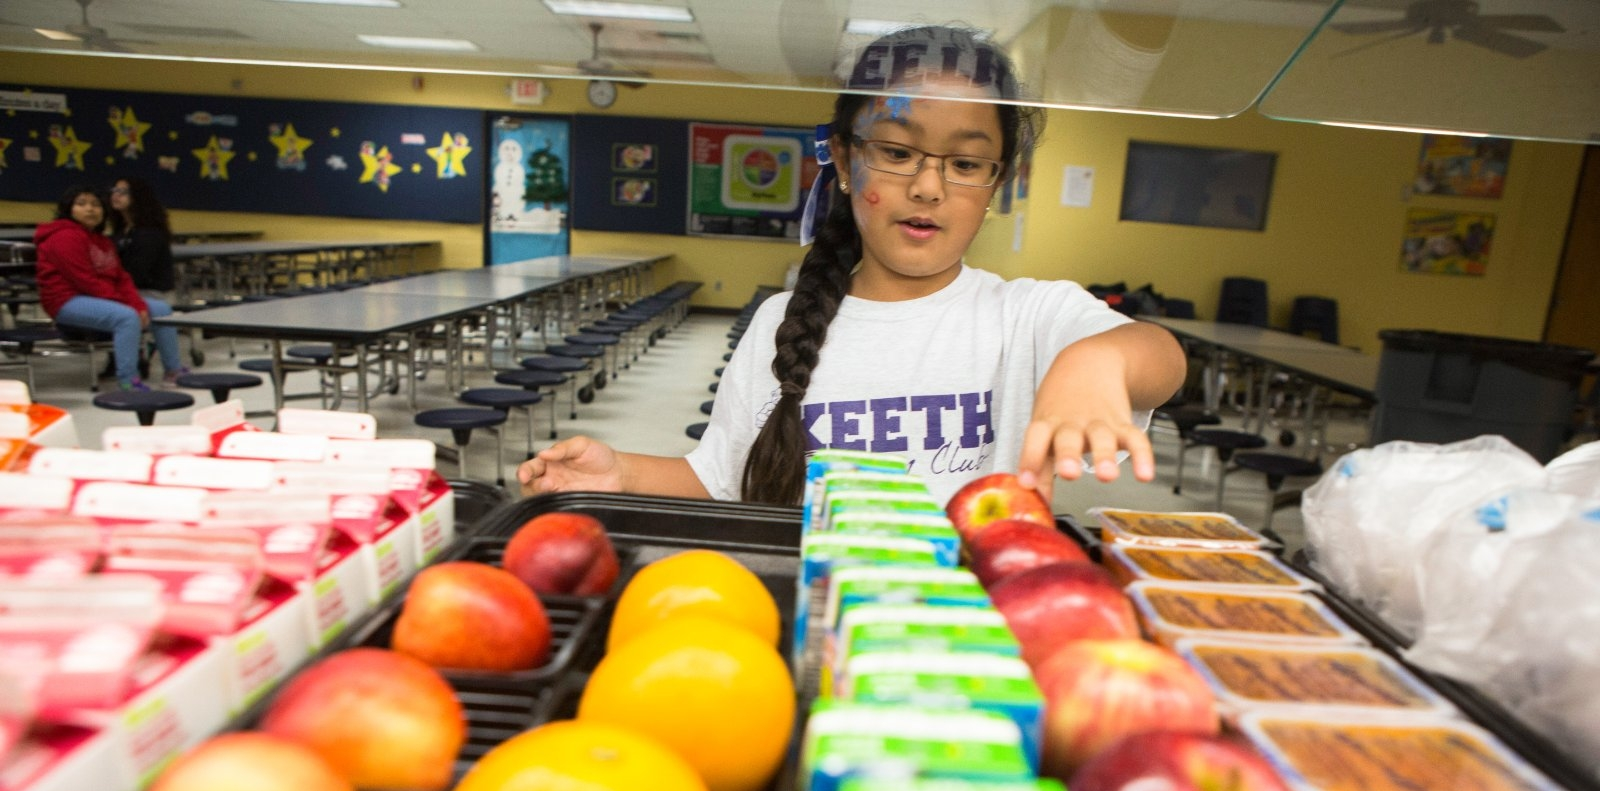 A girl selects a healthy snack in a school cafeteria.